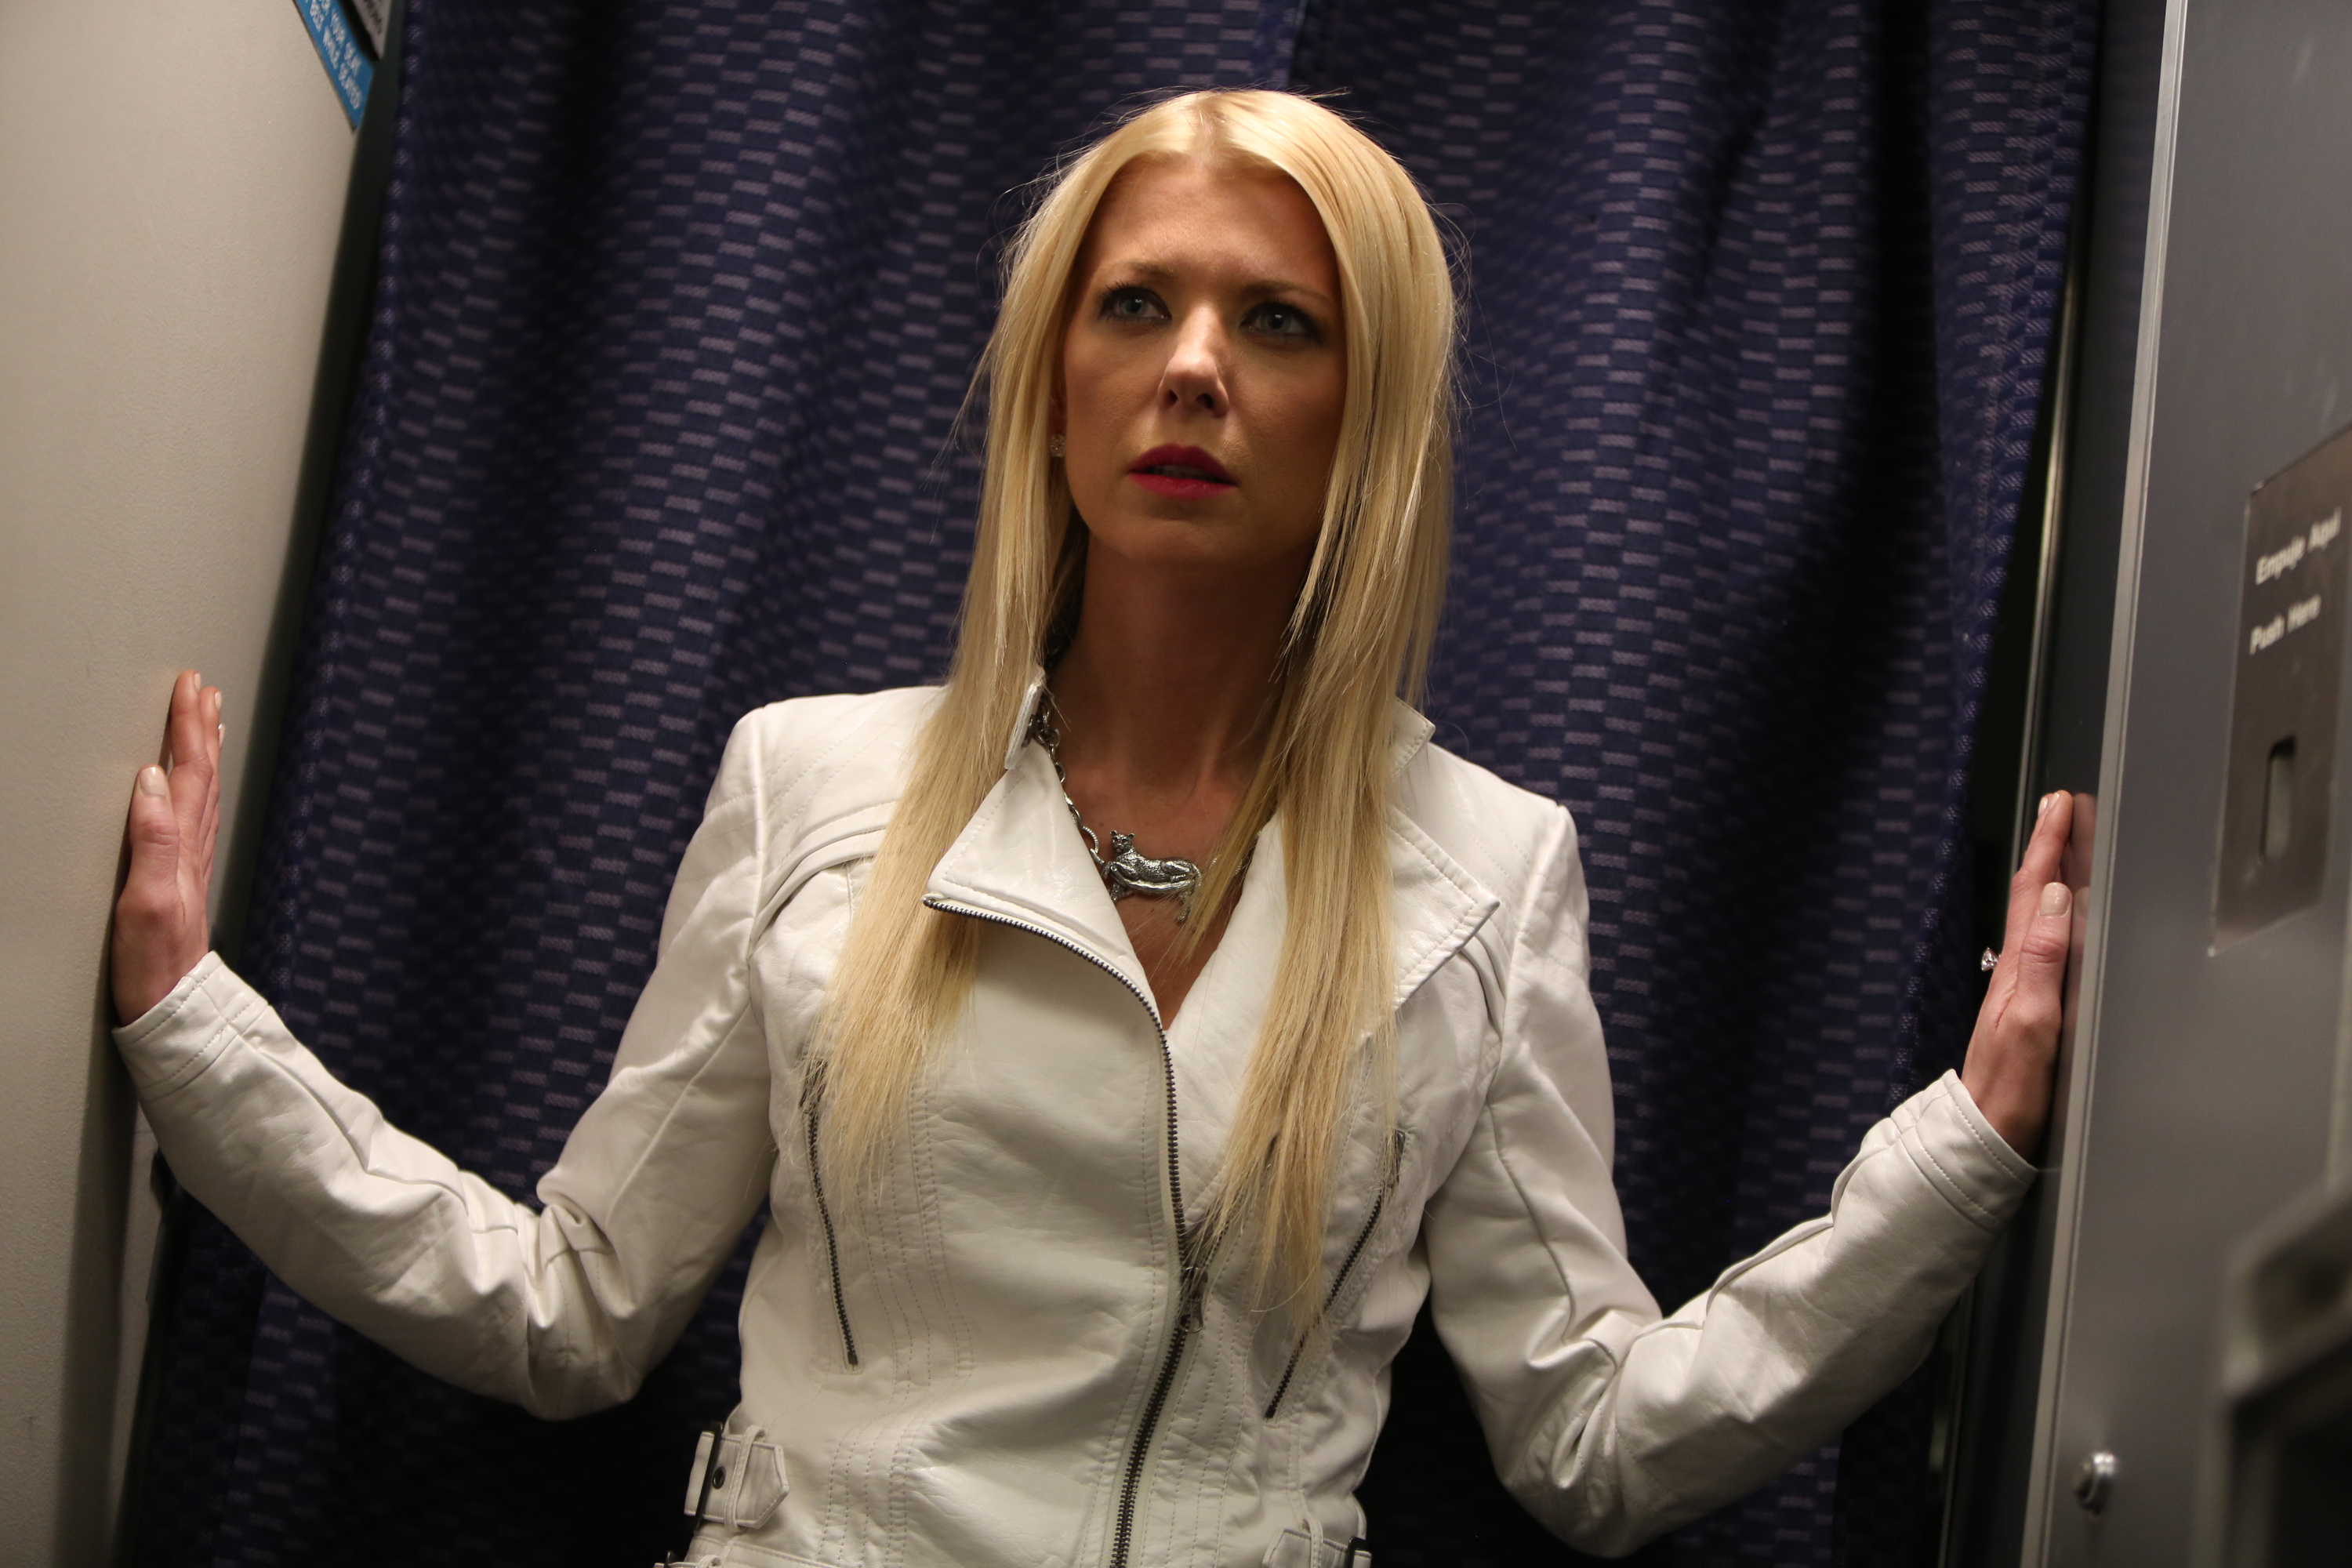 Is �Sharknado 2� Tara Reid�s lucky charm? | DailyDish